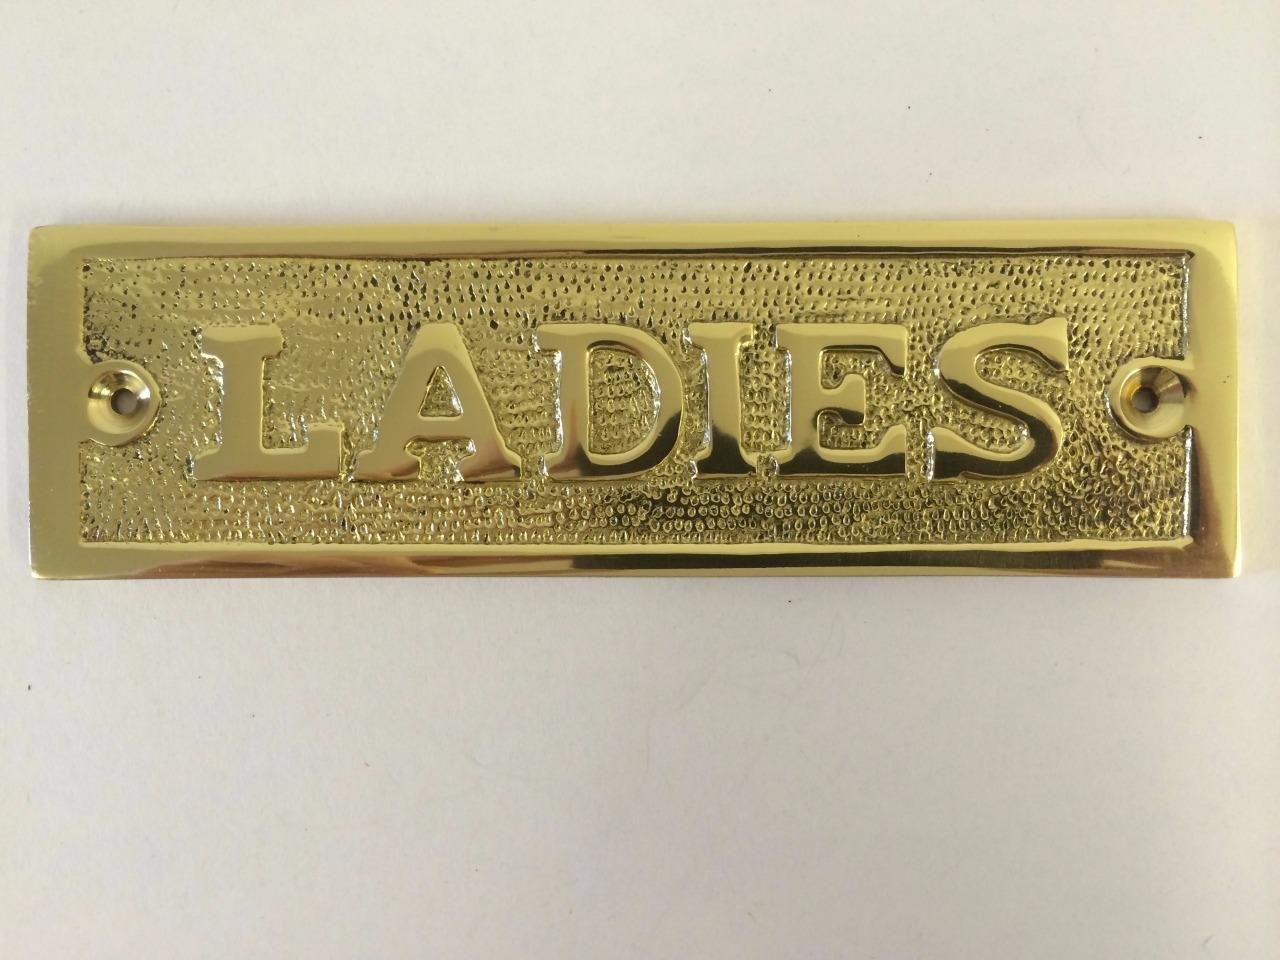 Bathroom Stall Screws gentlemen ladies toilet bathroom door sign plaque screws brass